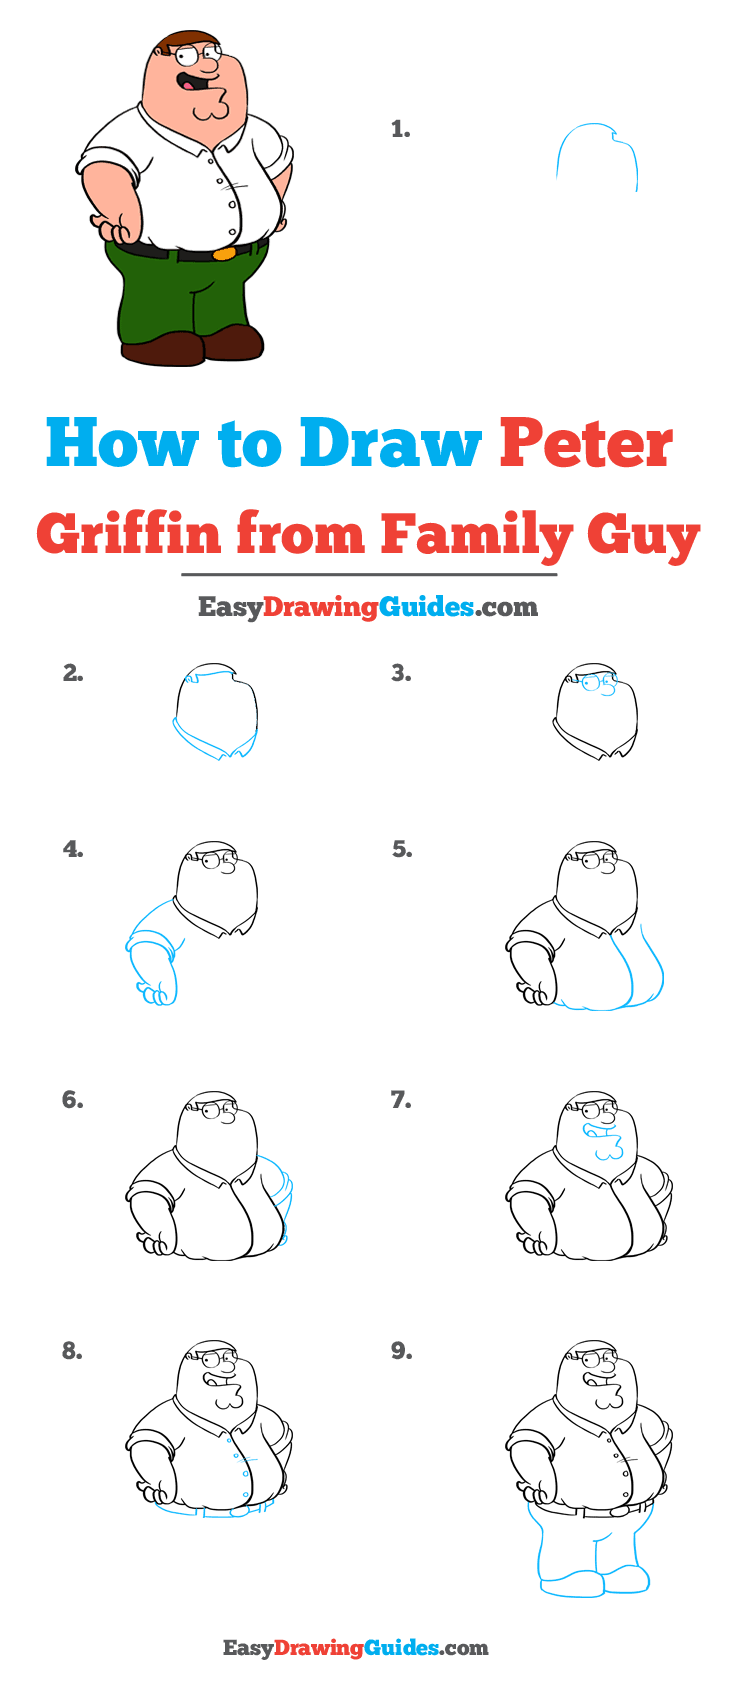 How to Draw Peter Griffin from Family Guy